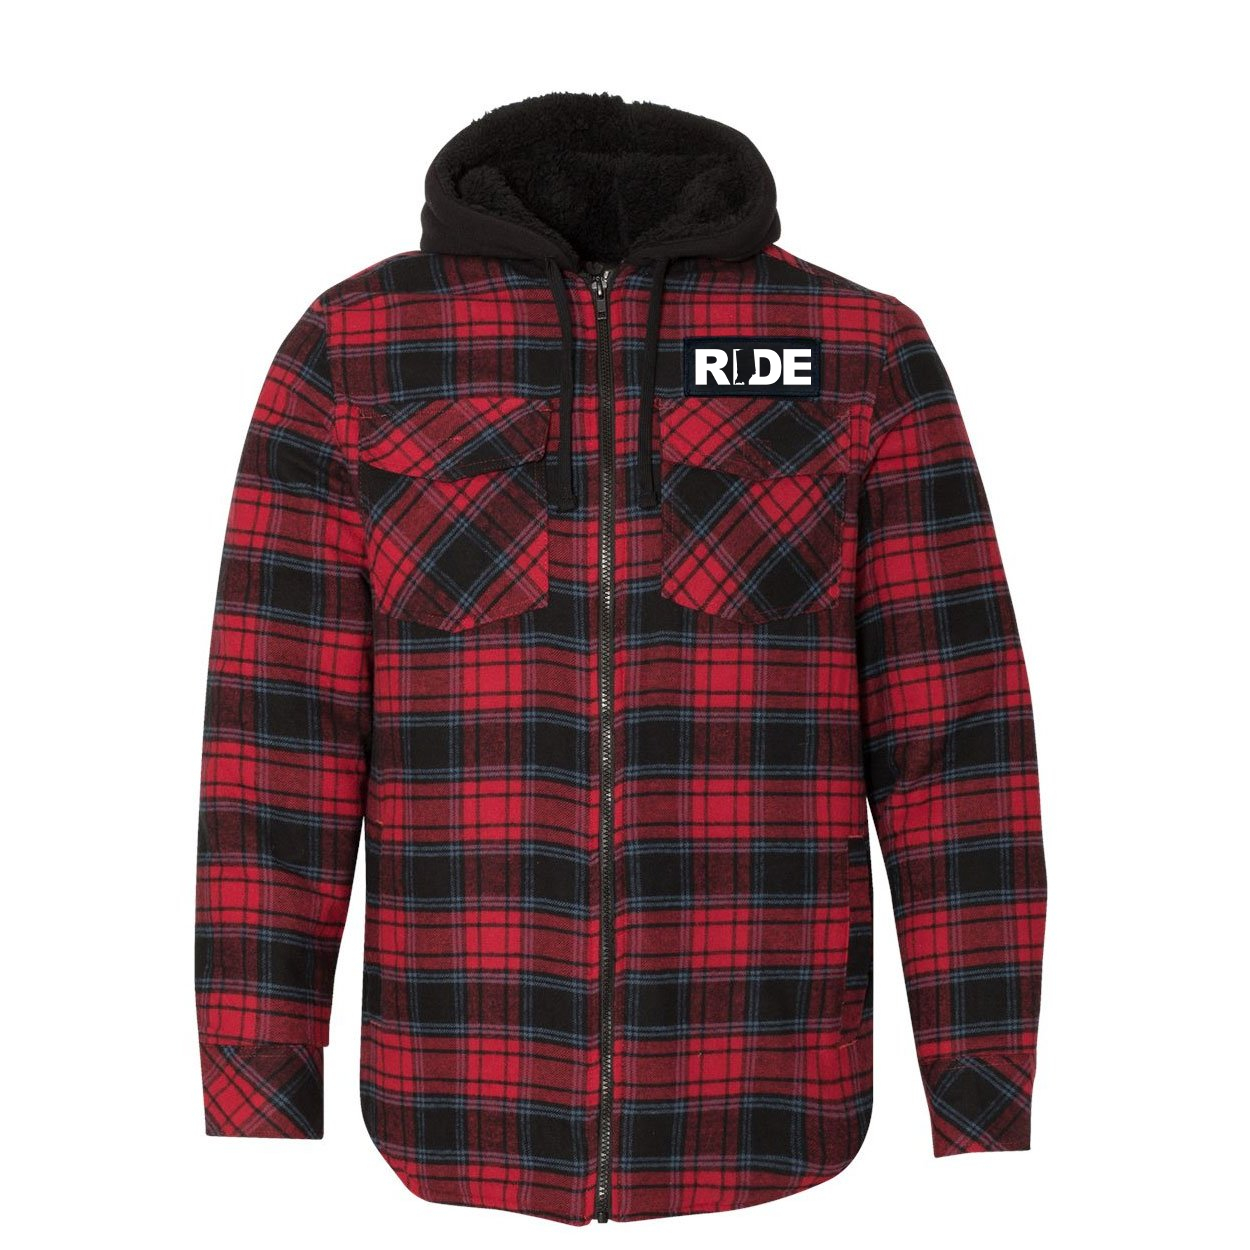 Ride Indiana Classic Unisex Full Zip Woven Patch Hooded Flannel Jacket Red/Black Buffalo (White Logo)